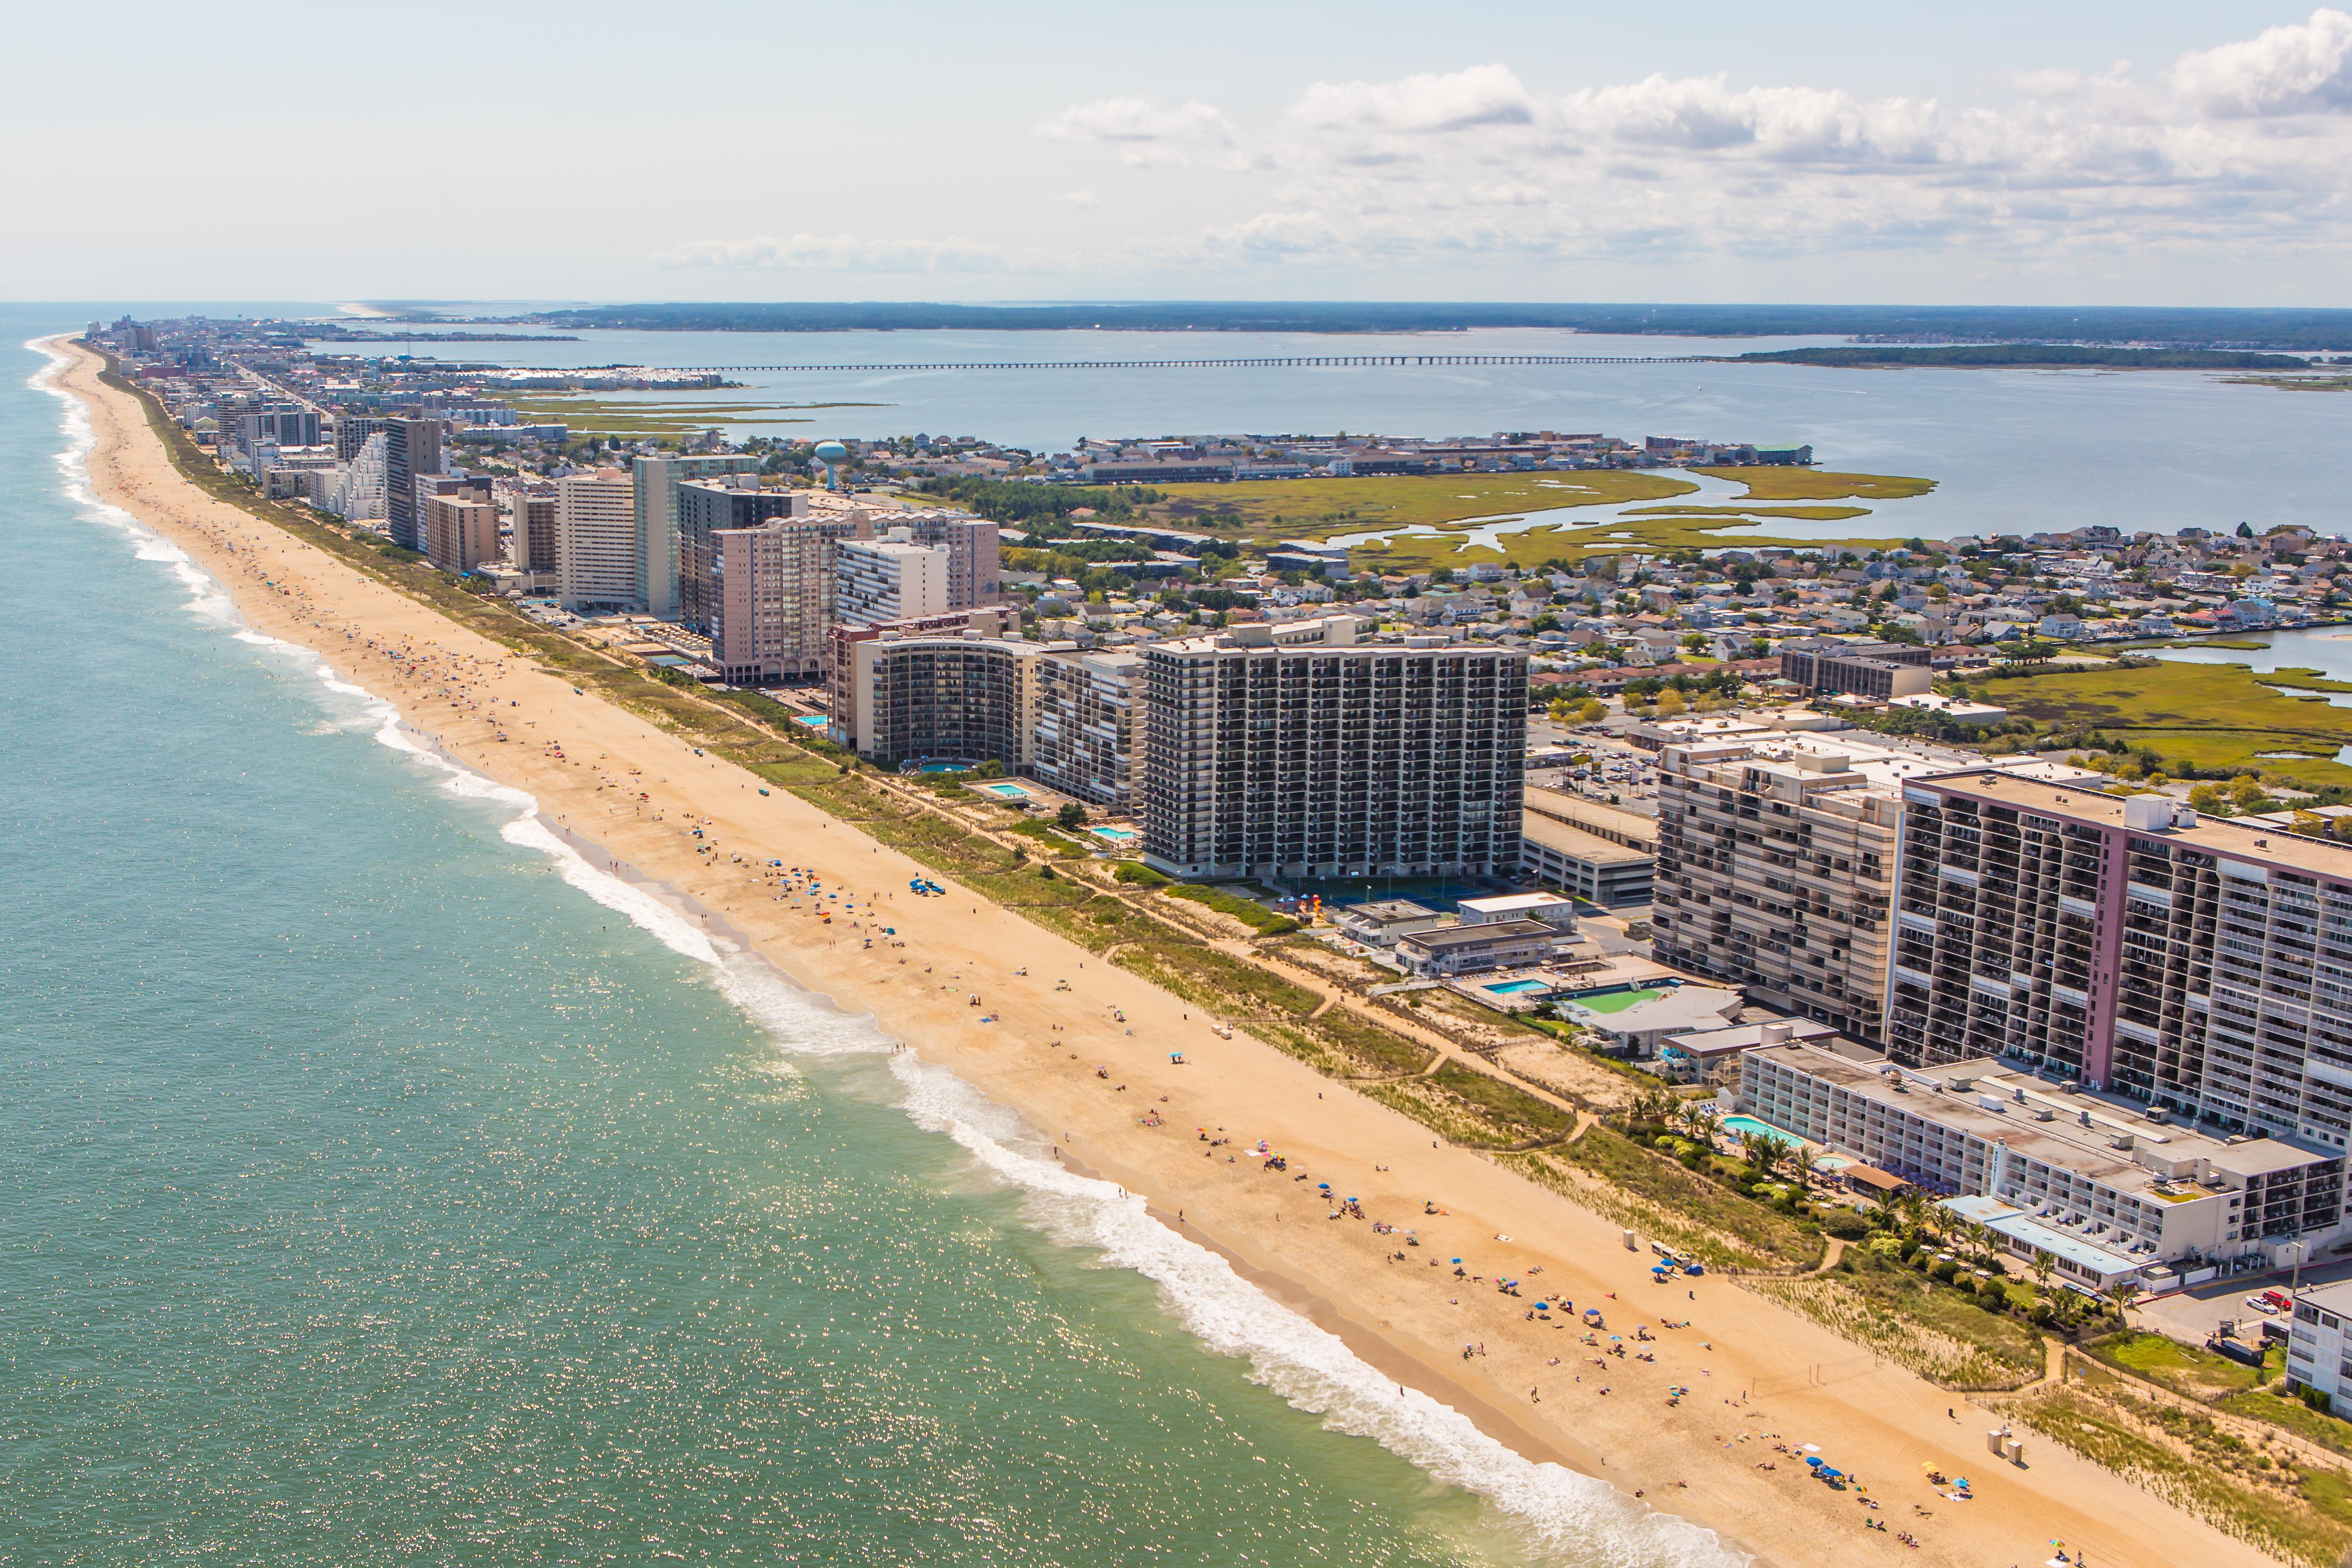 hotels in ocean city from 38 find cheap ocean city hotels with rh momondo com